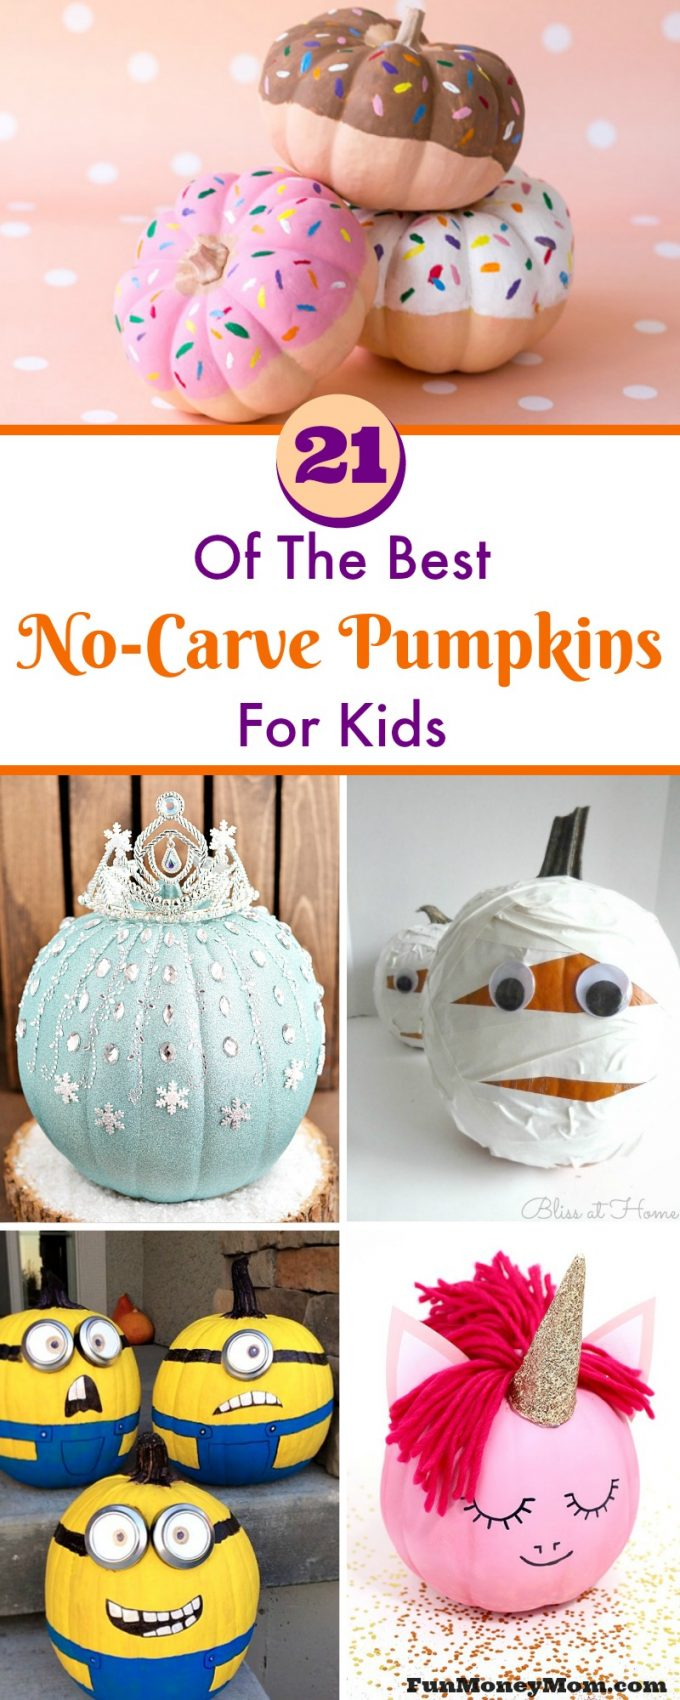 Ready to get started on your Halloween decorations? The kids are going to love these super cute no carve pumpkins!